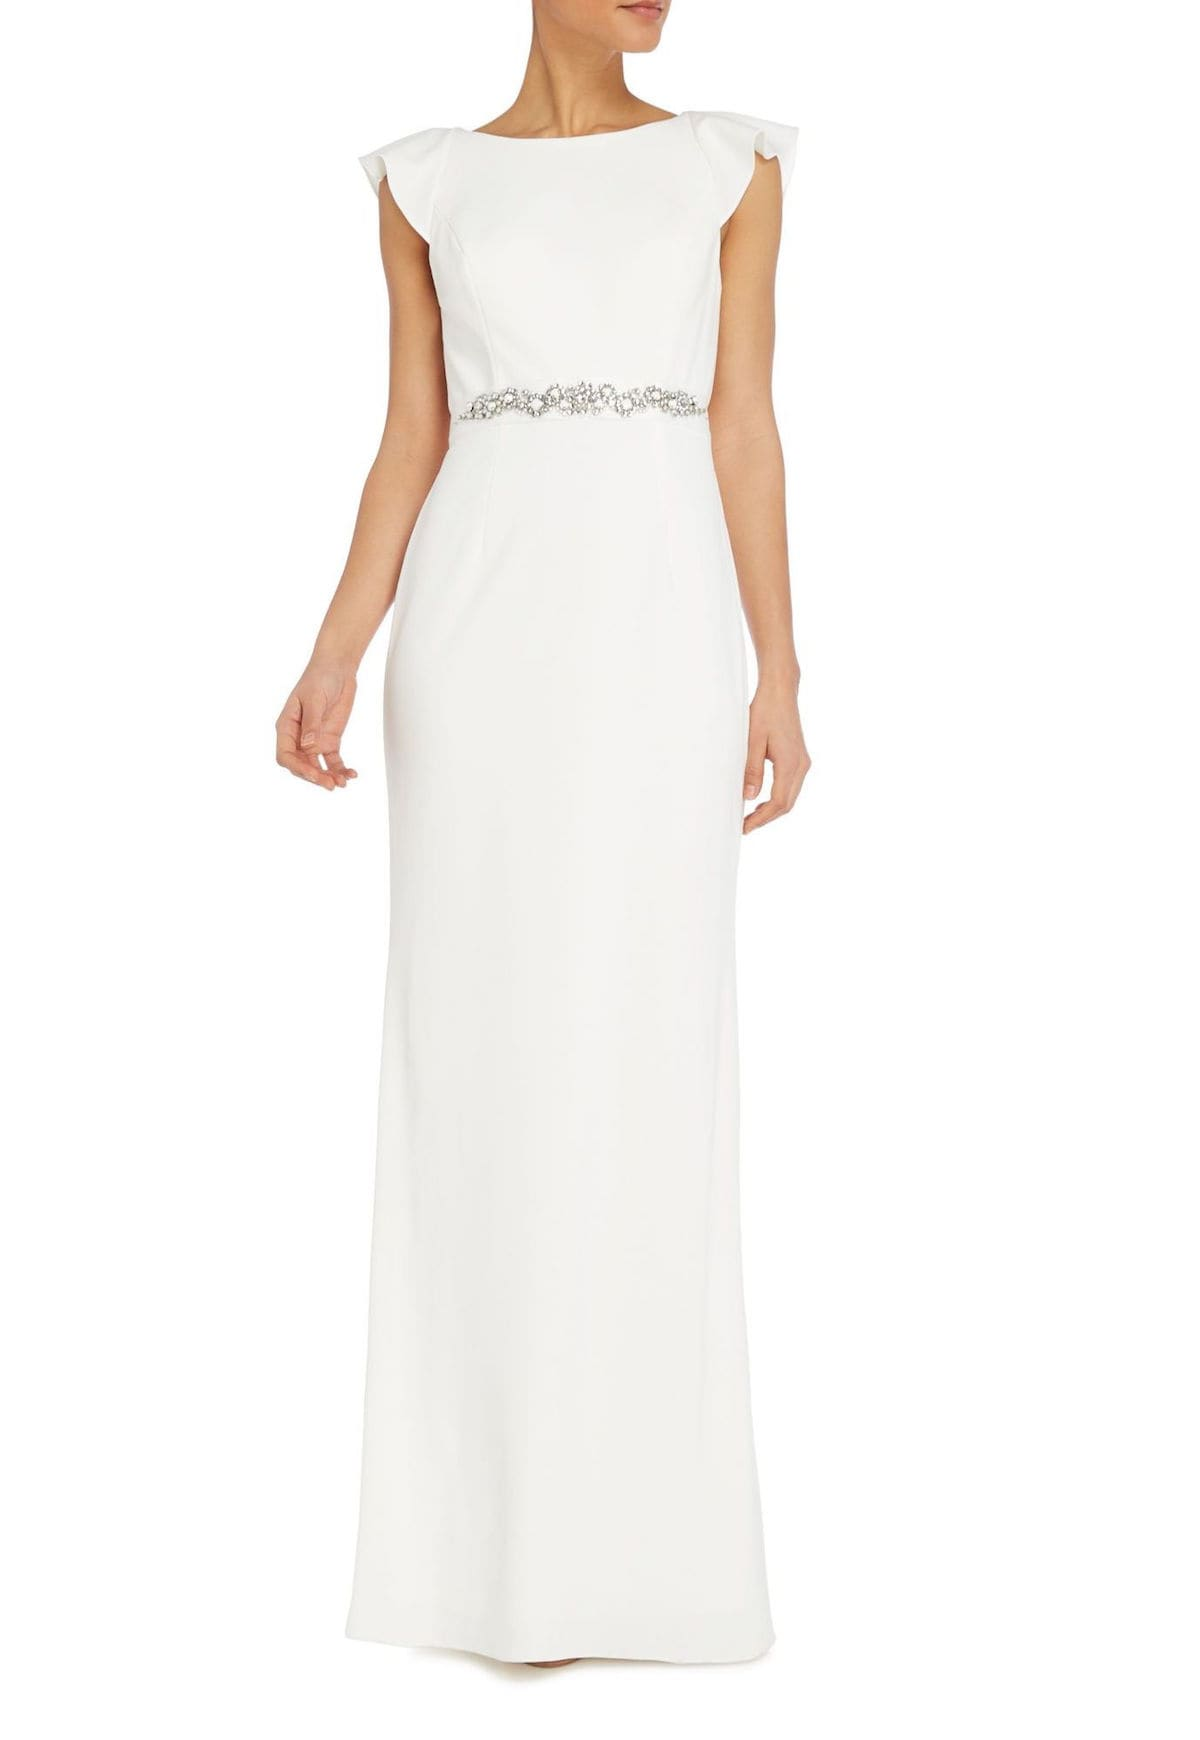 Ruffle Sleeve Crepe Gown With Open Back And Jeweled Sash By Adrianna Papell At House Of Fraser 210